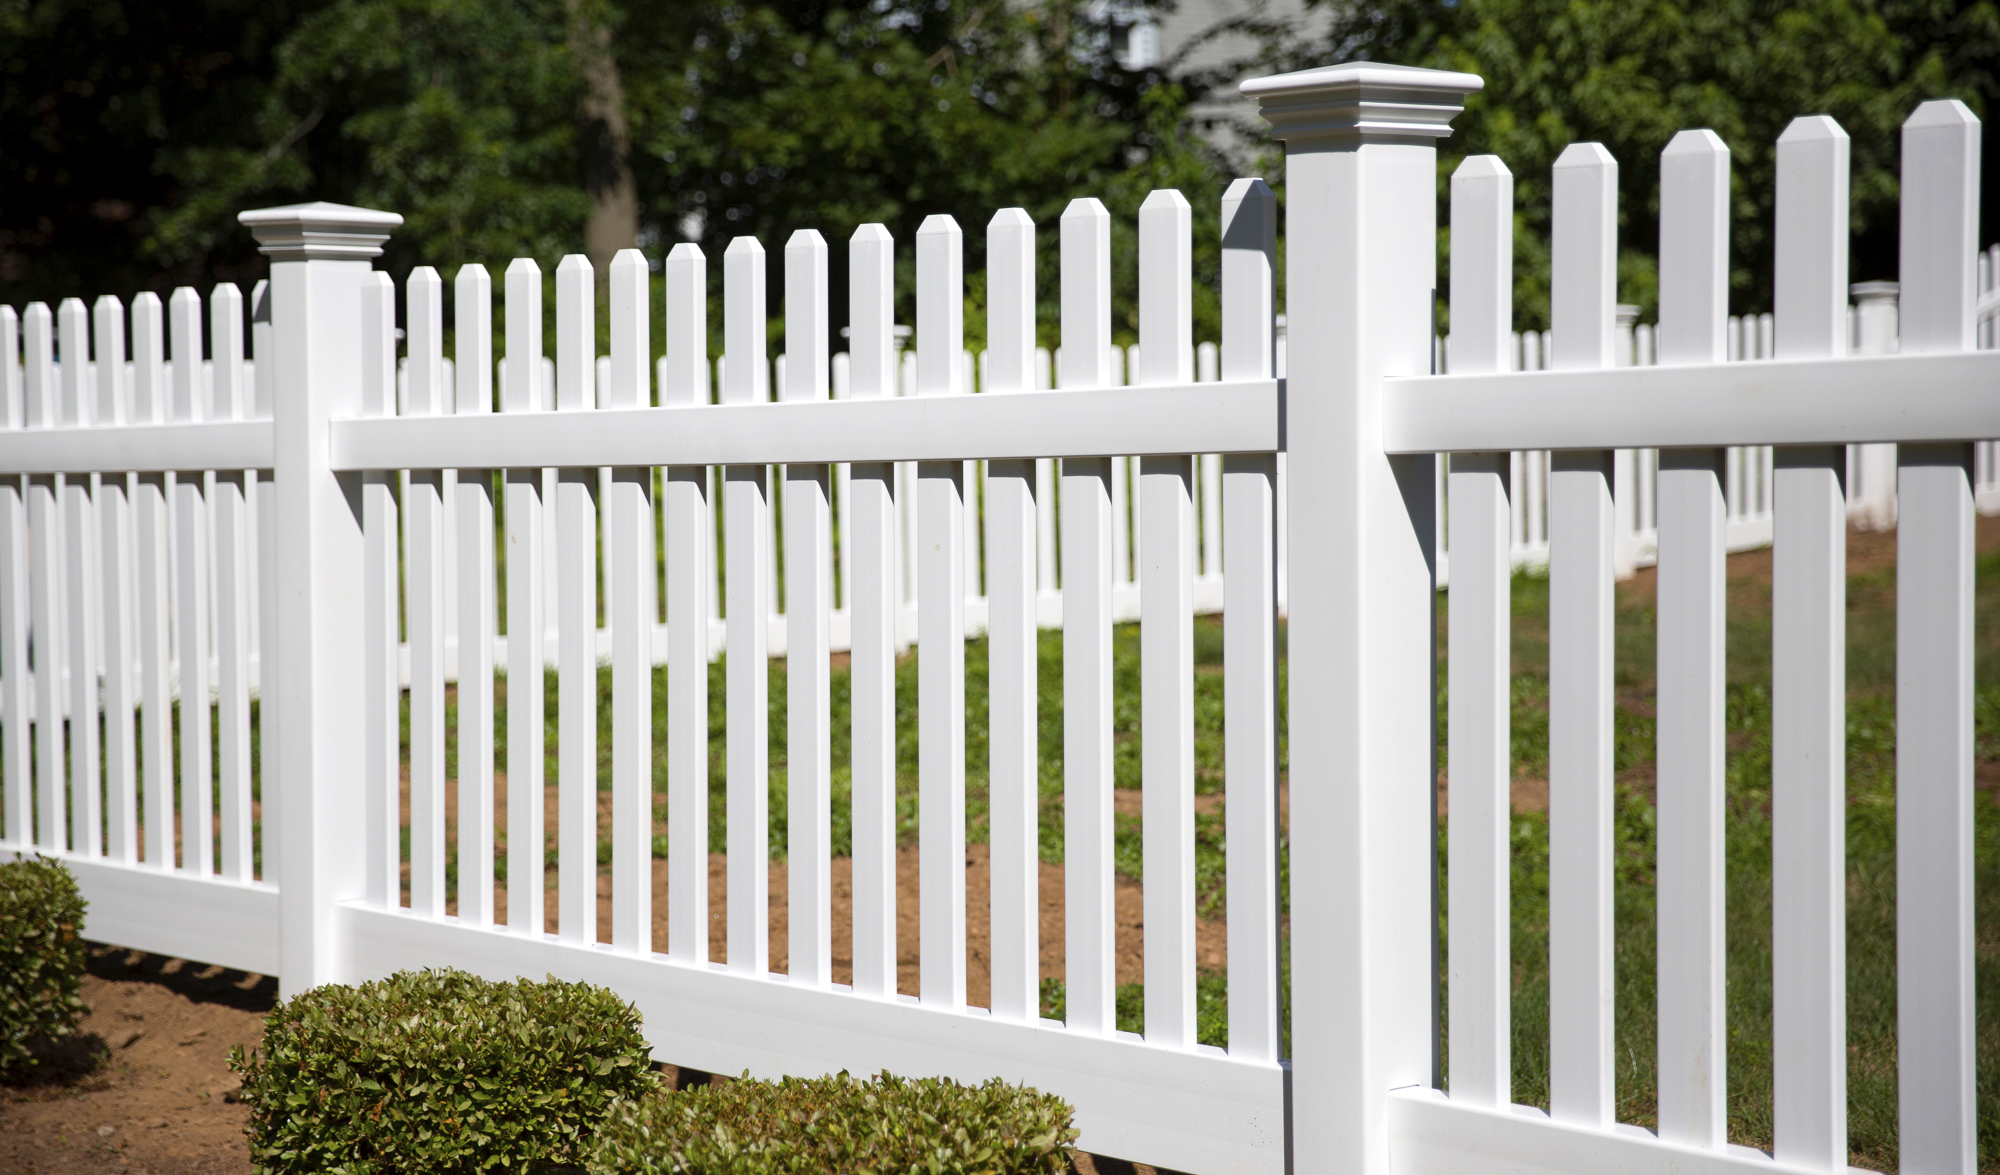 Fence Kits Materials For Diy Fencing Projects The Authority